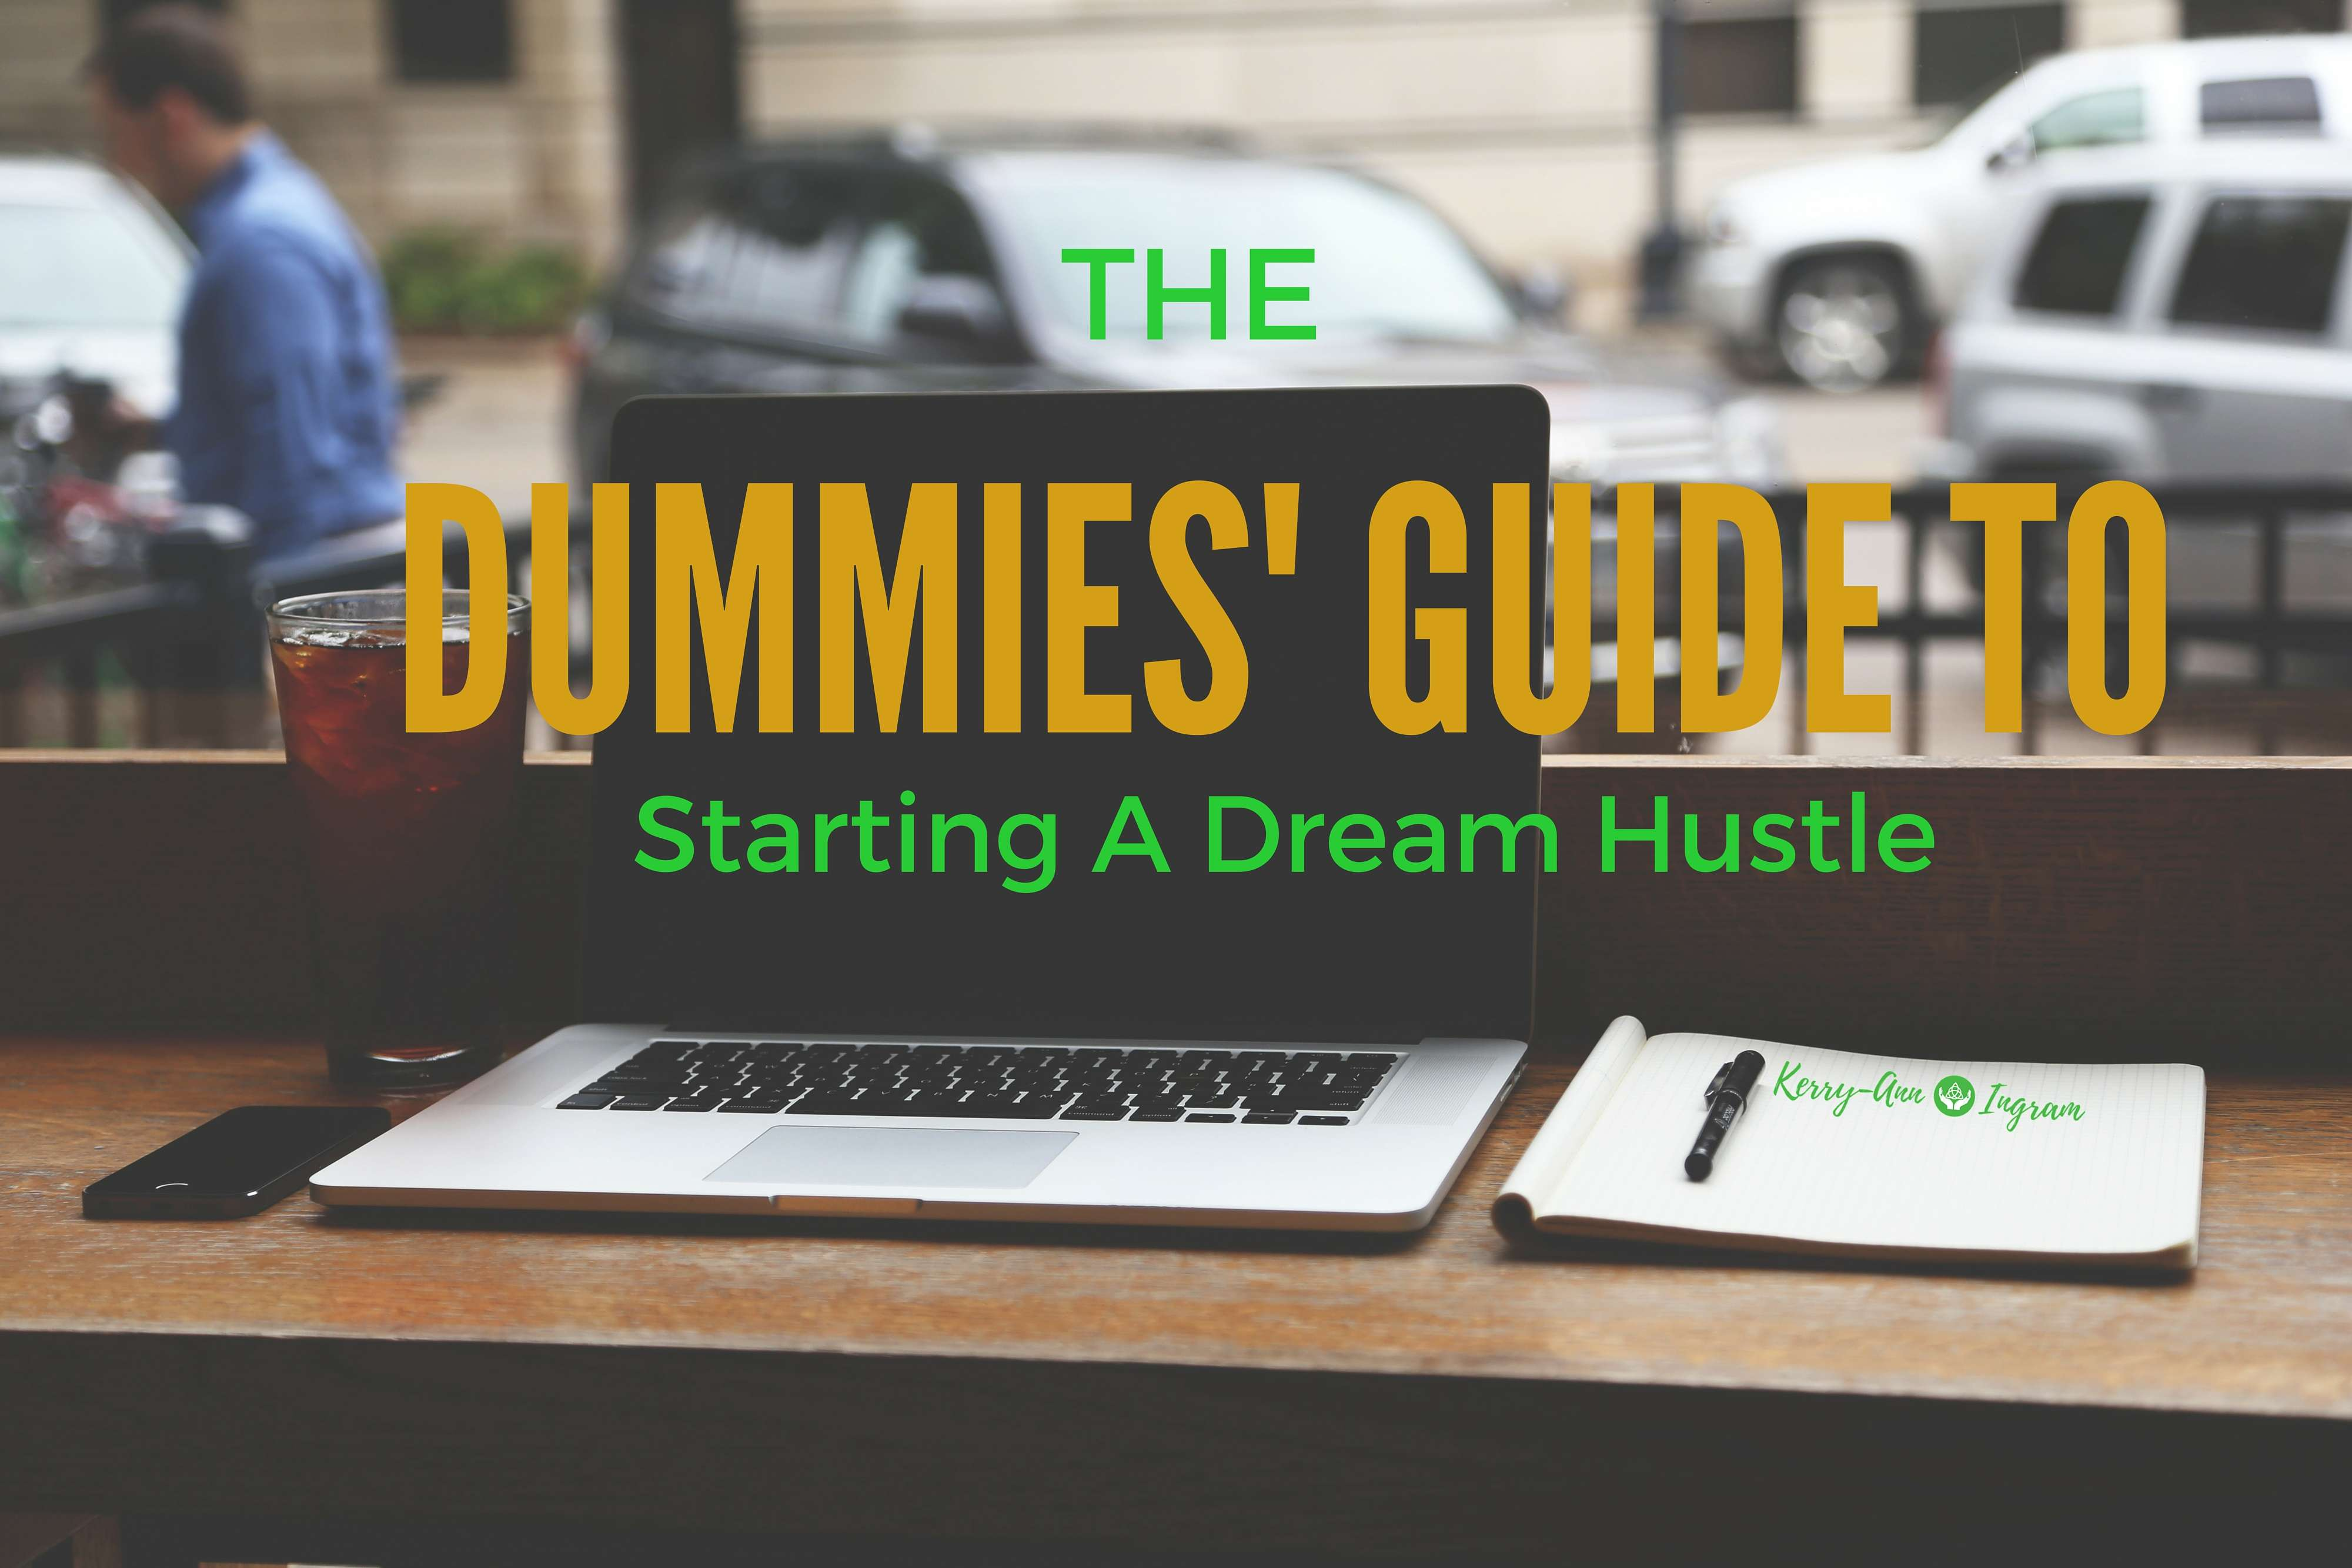 Kerry-Ann Ingram The dummies Guide to starting a dream hustle: